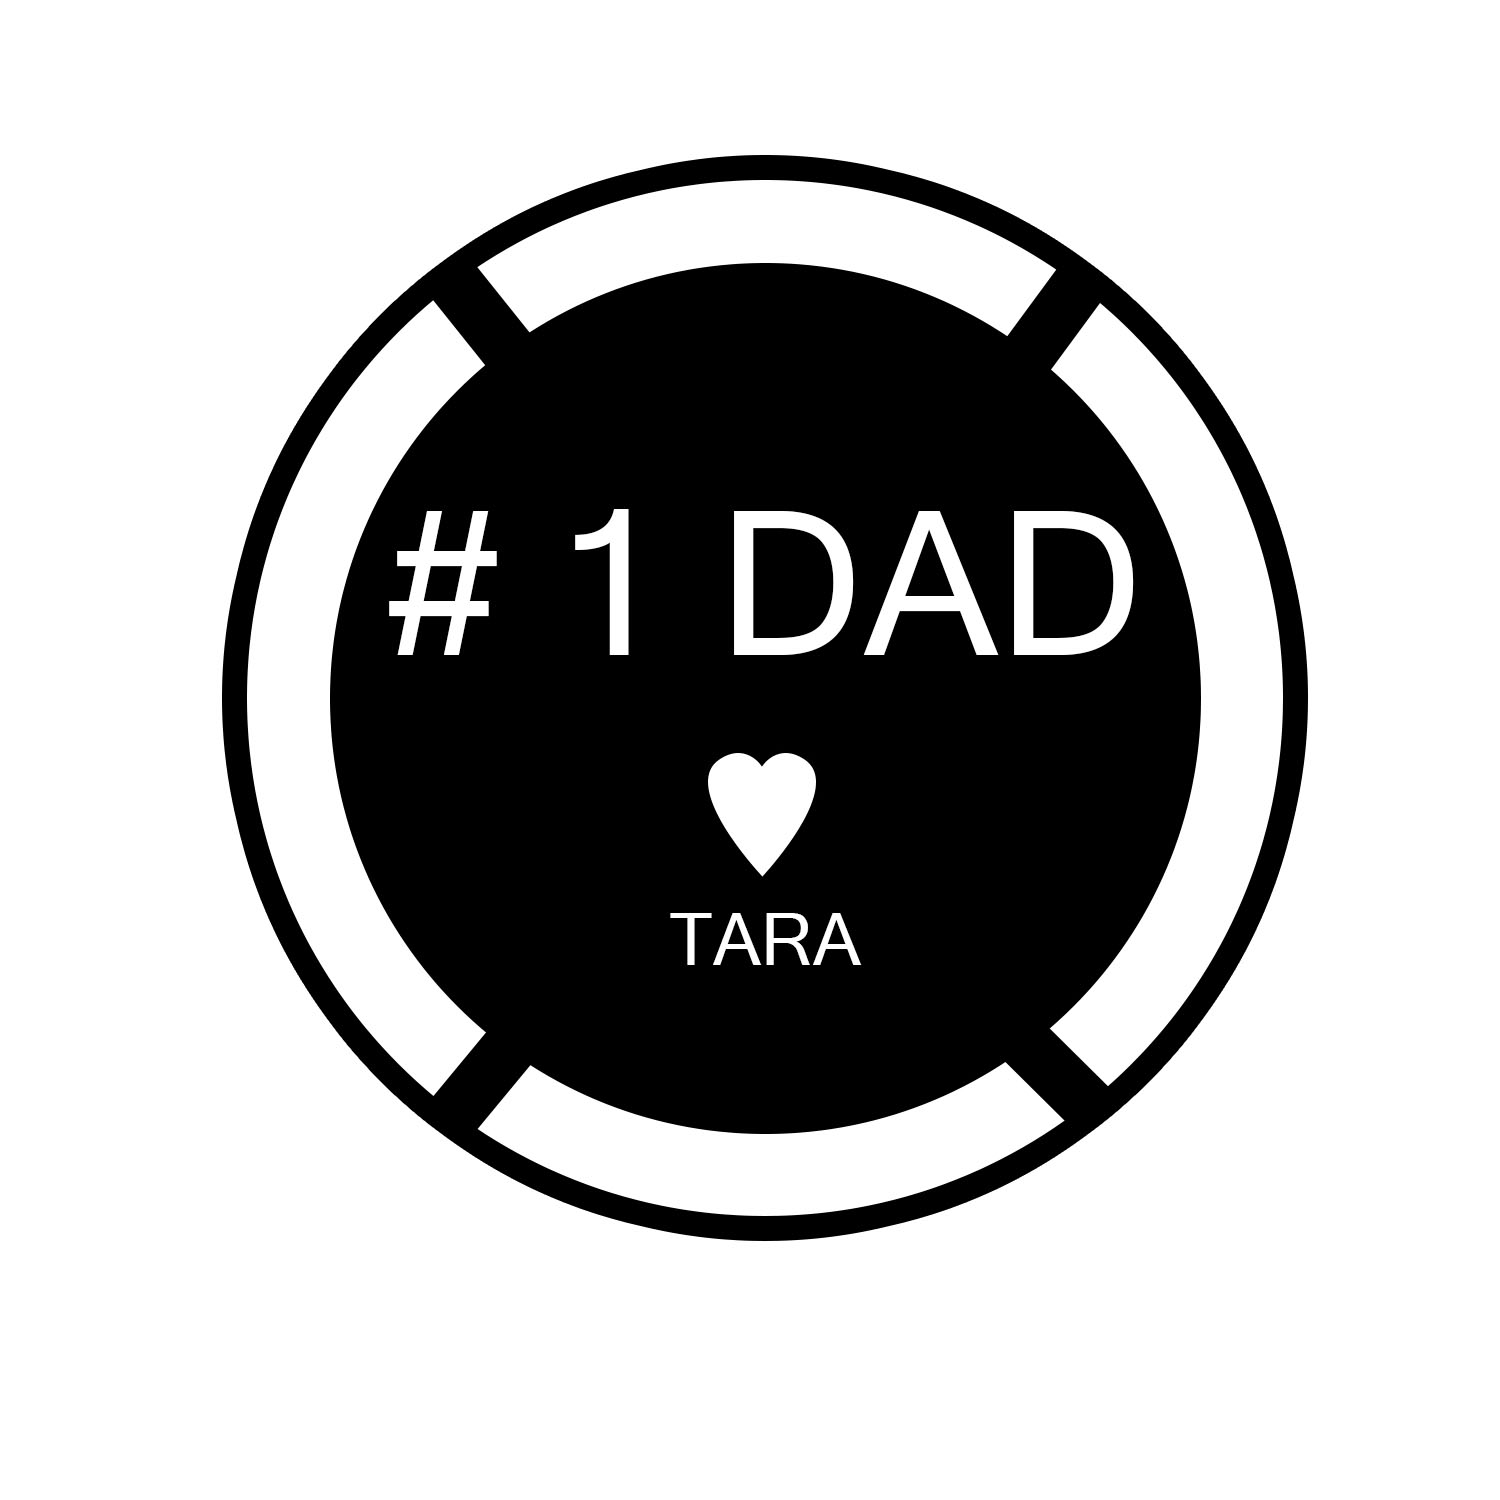 Tara's sign idea to give to her Dad.